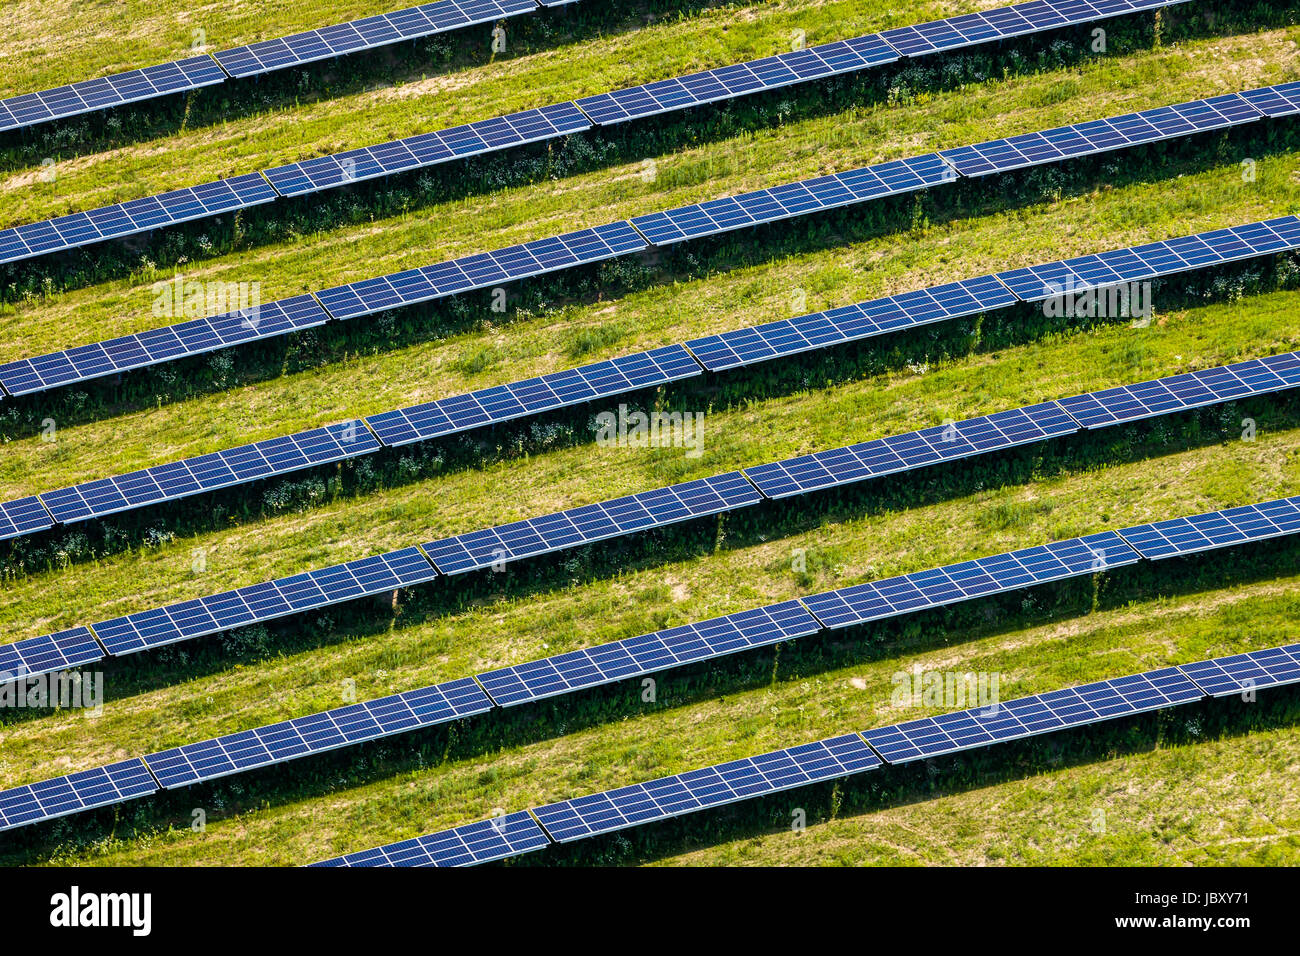 Aerial view of a Solar Farm. - Stock Image